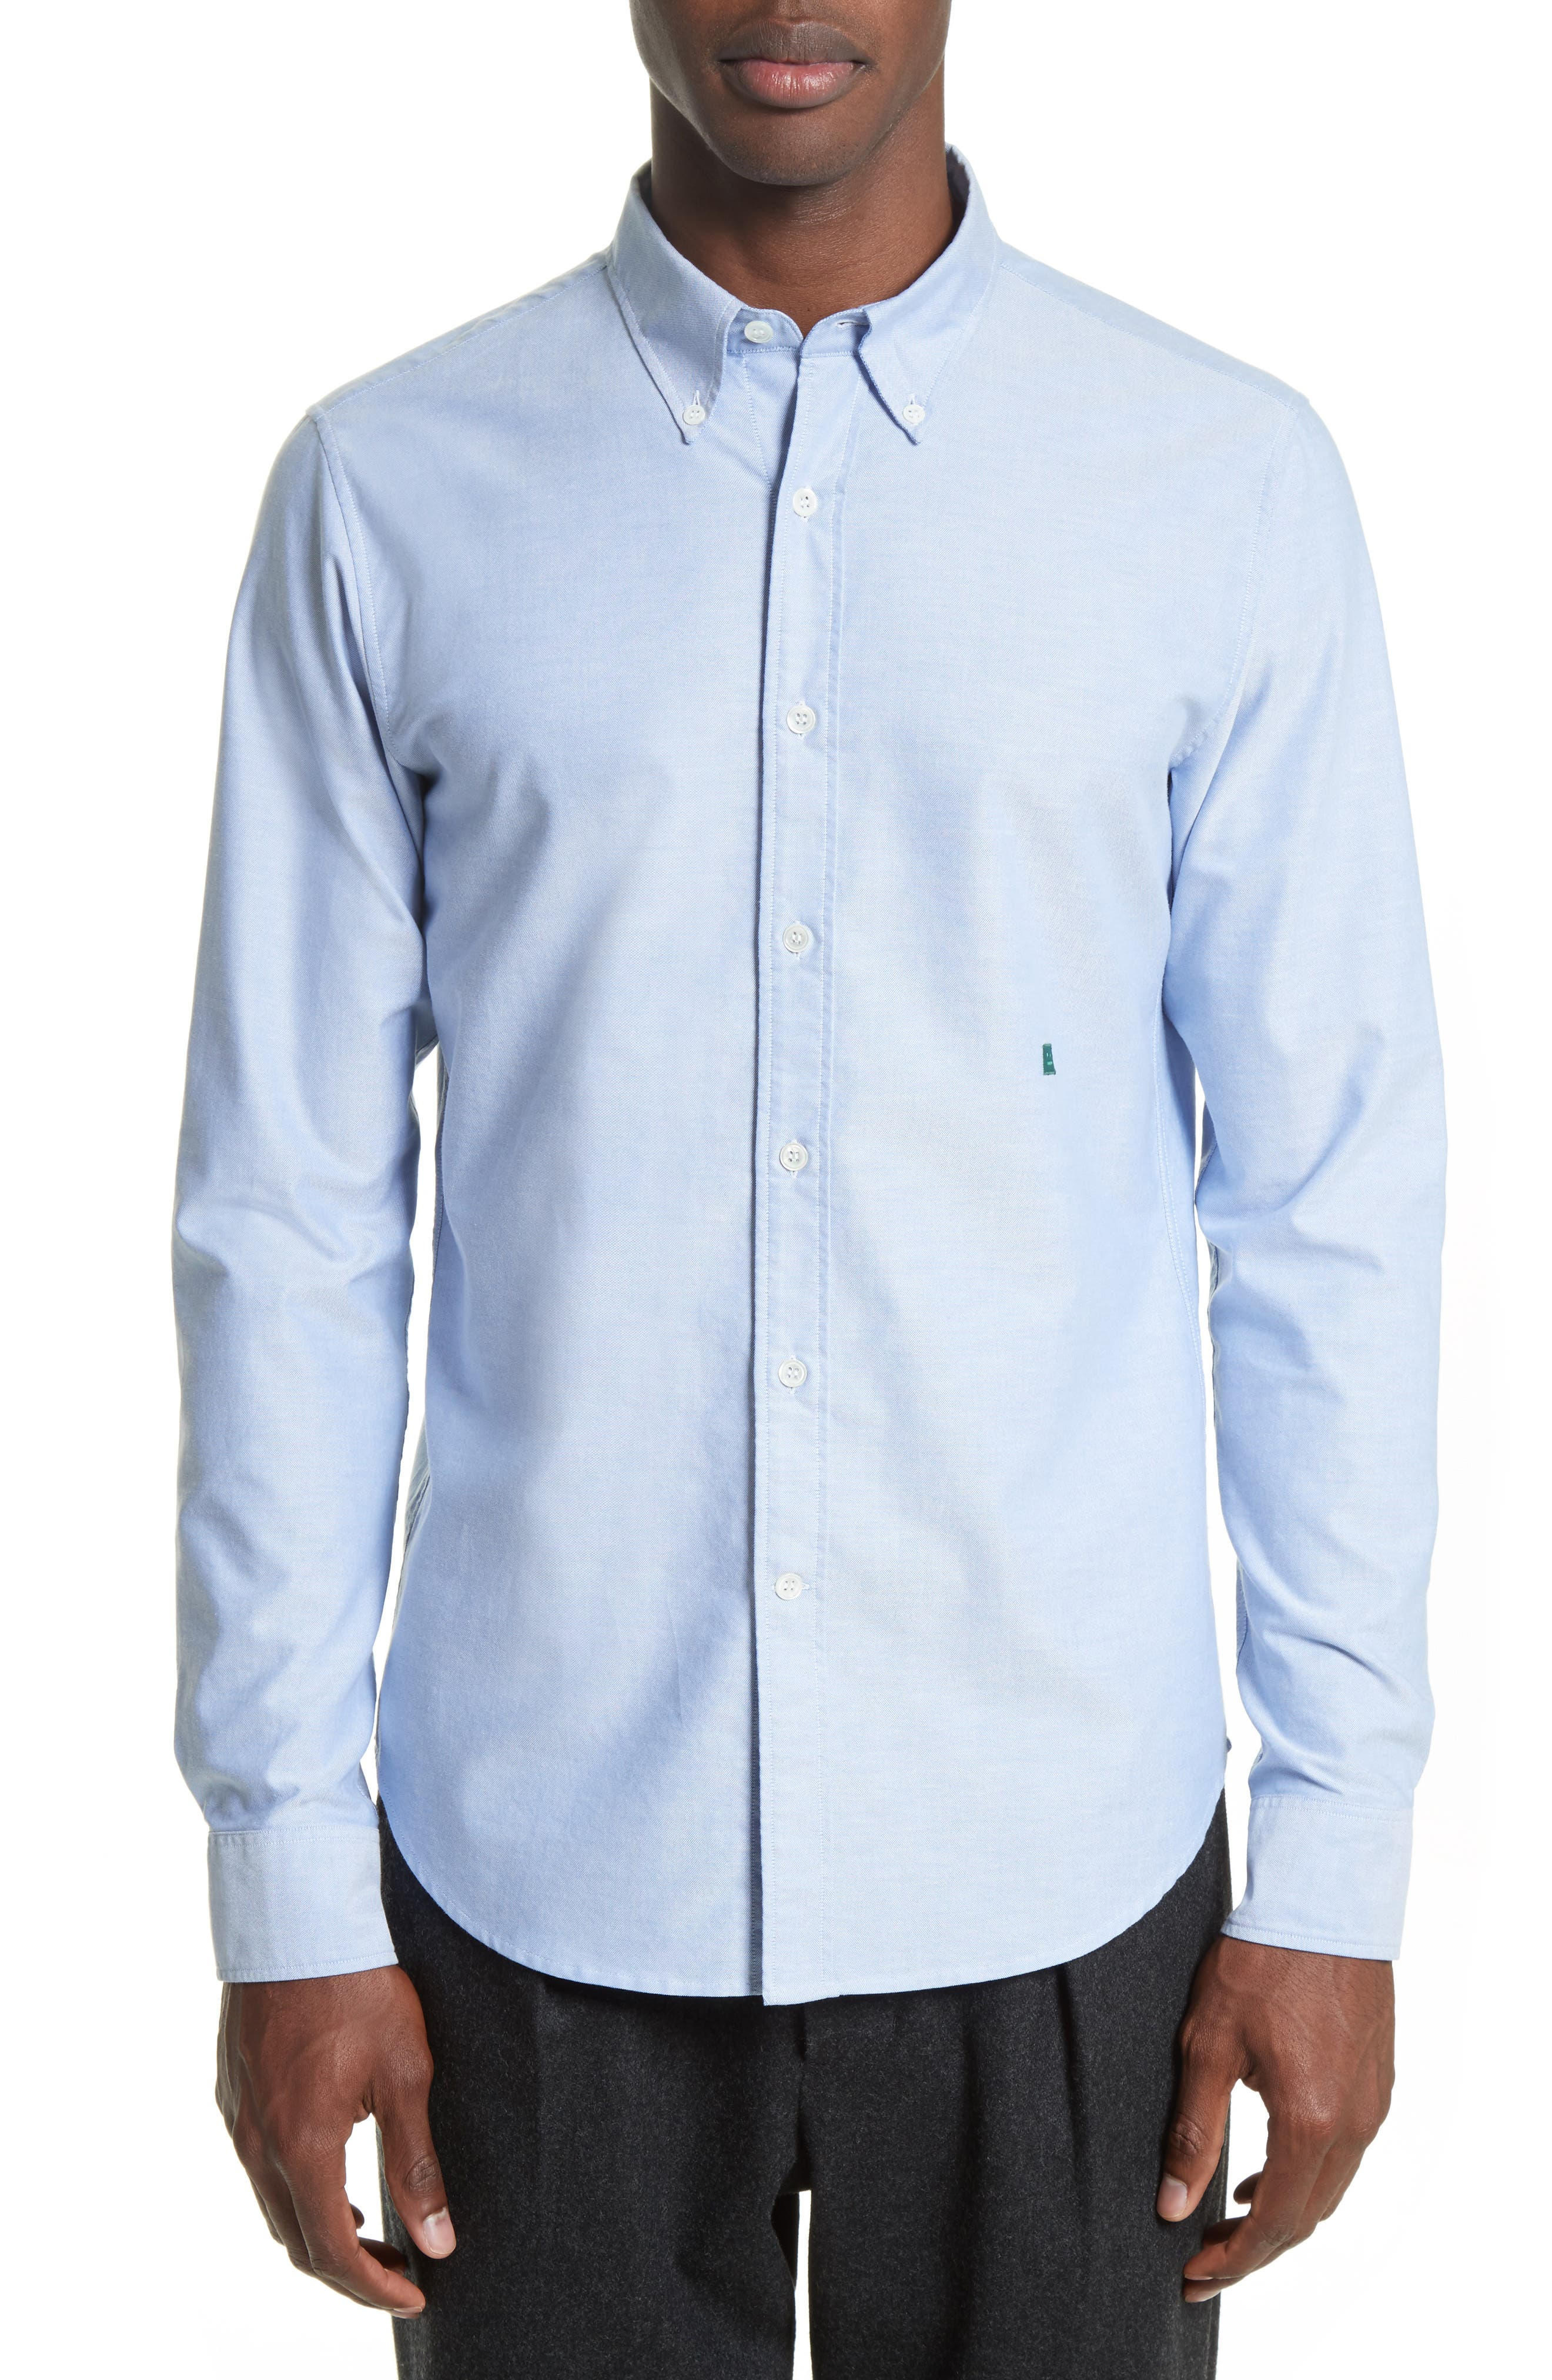 Ohio Face Patch Oxford Shirt,                         Main,                         color, Blue